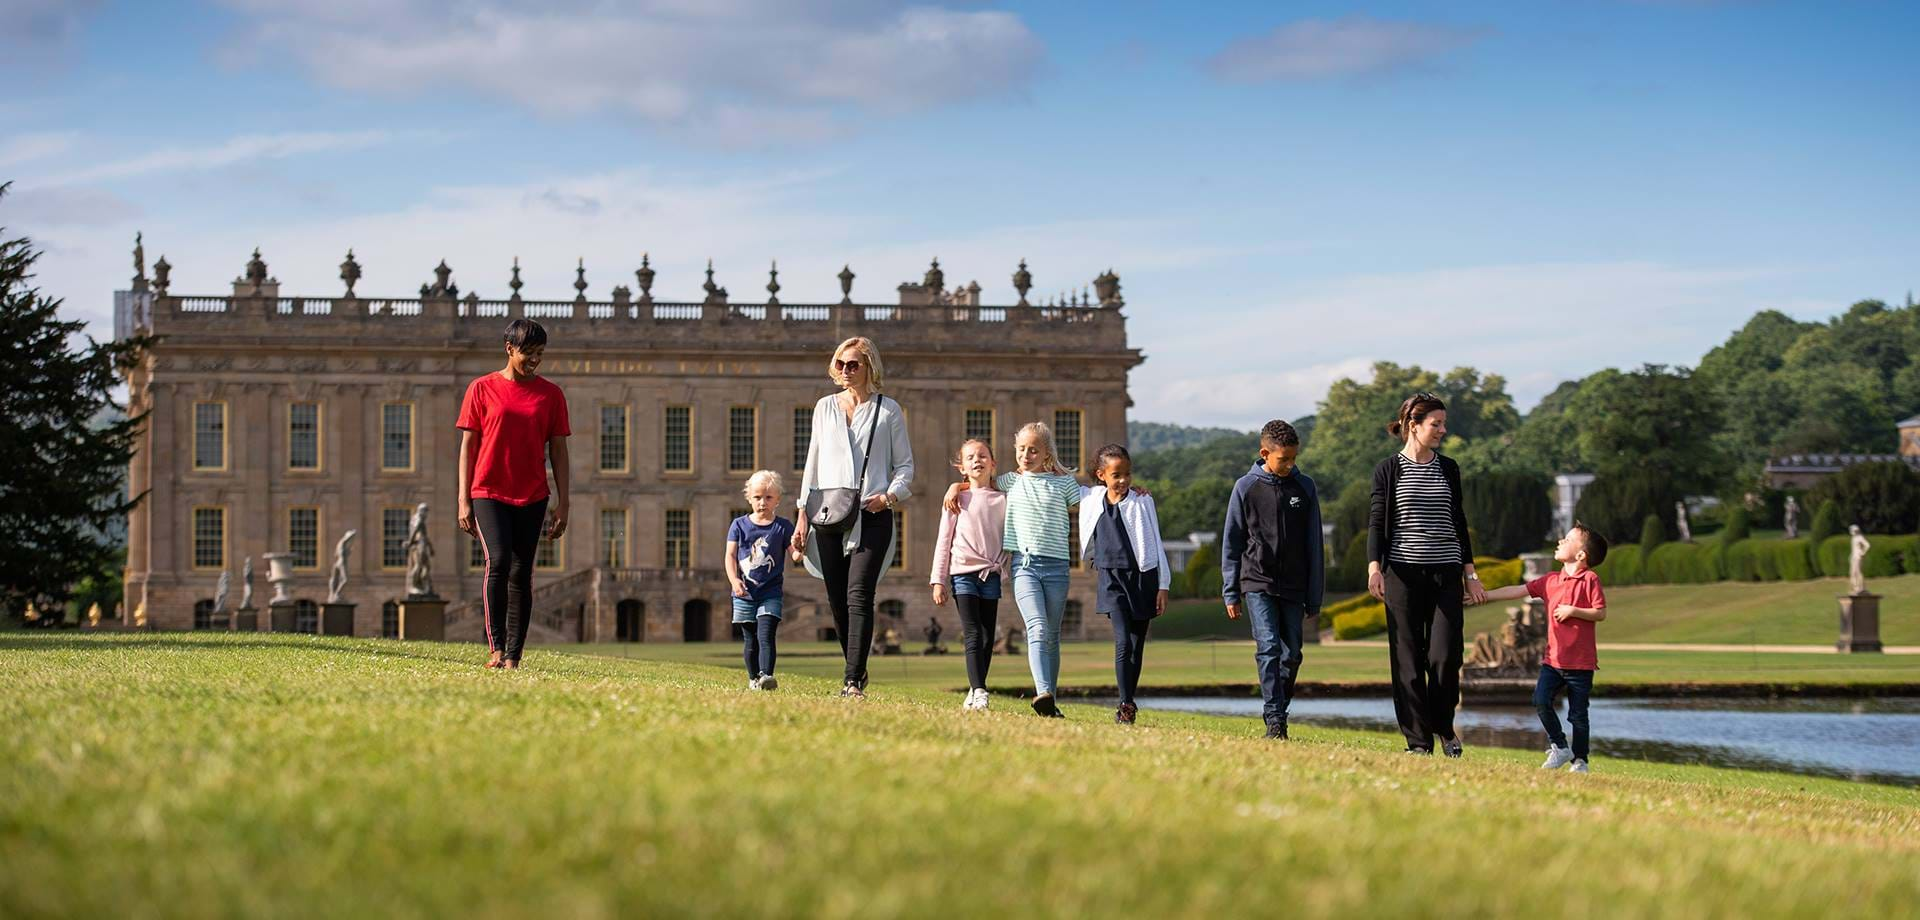 Your visit to Chatsworth